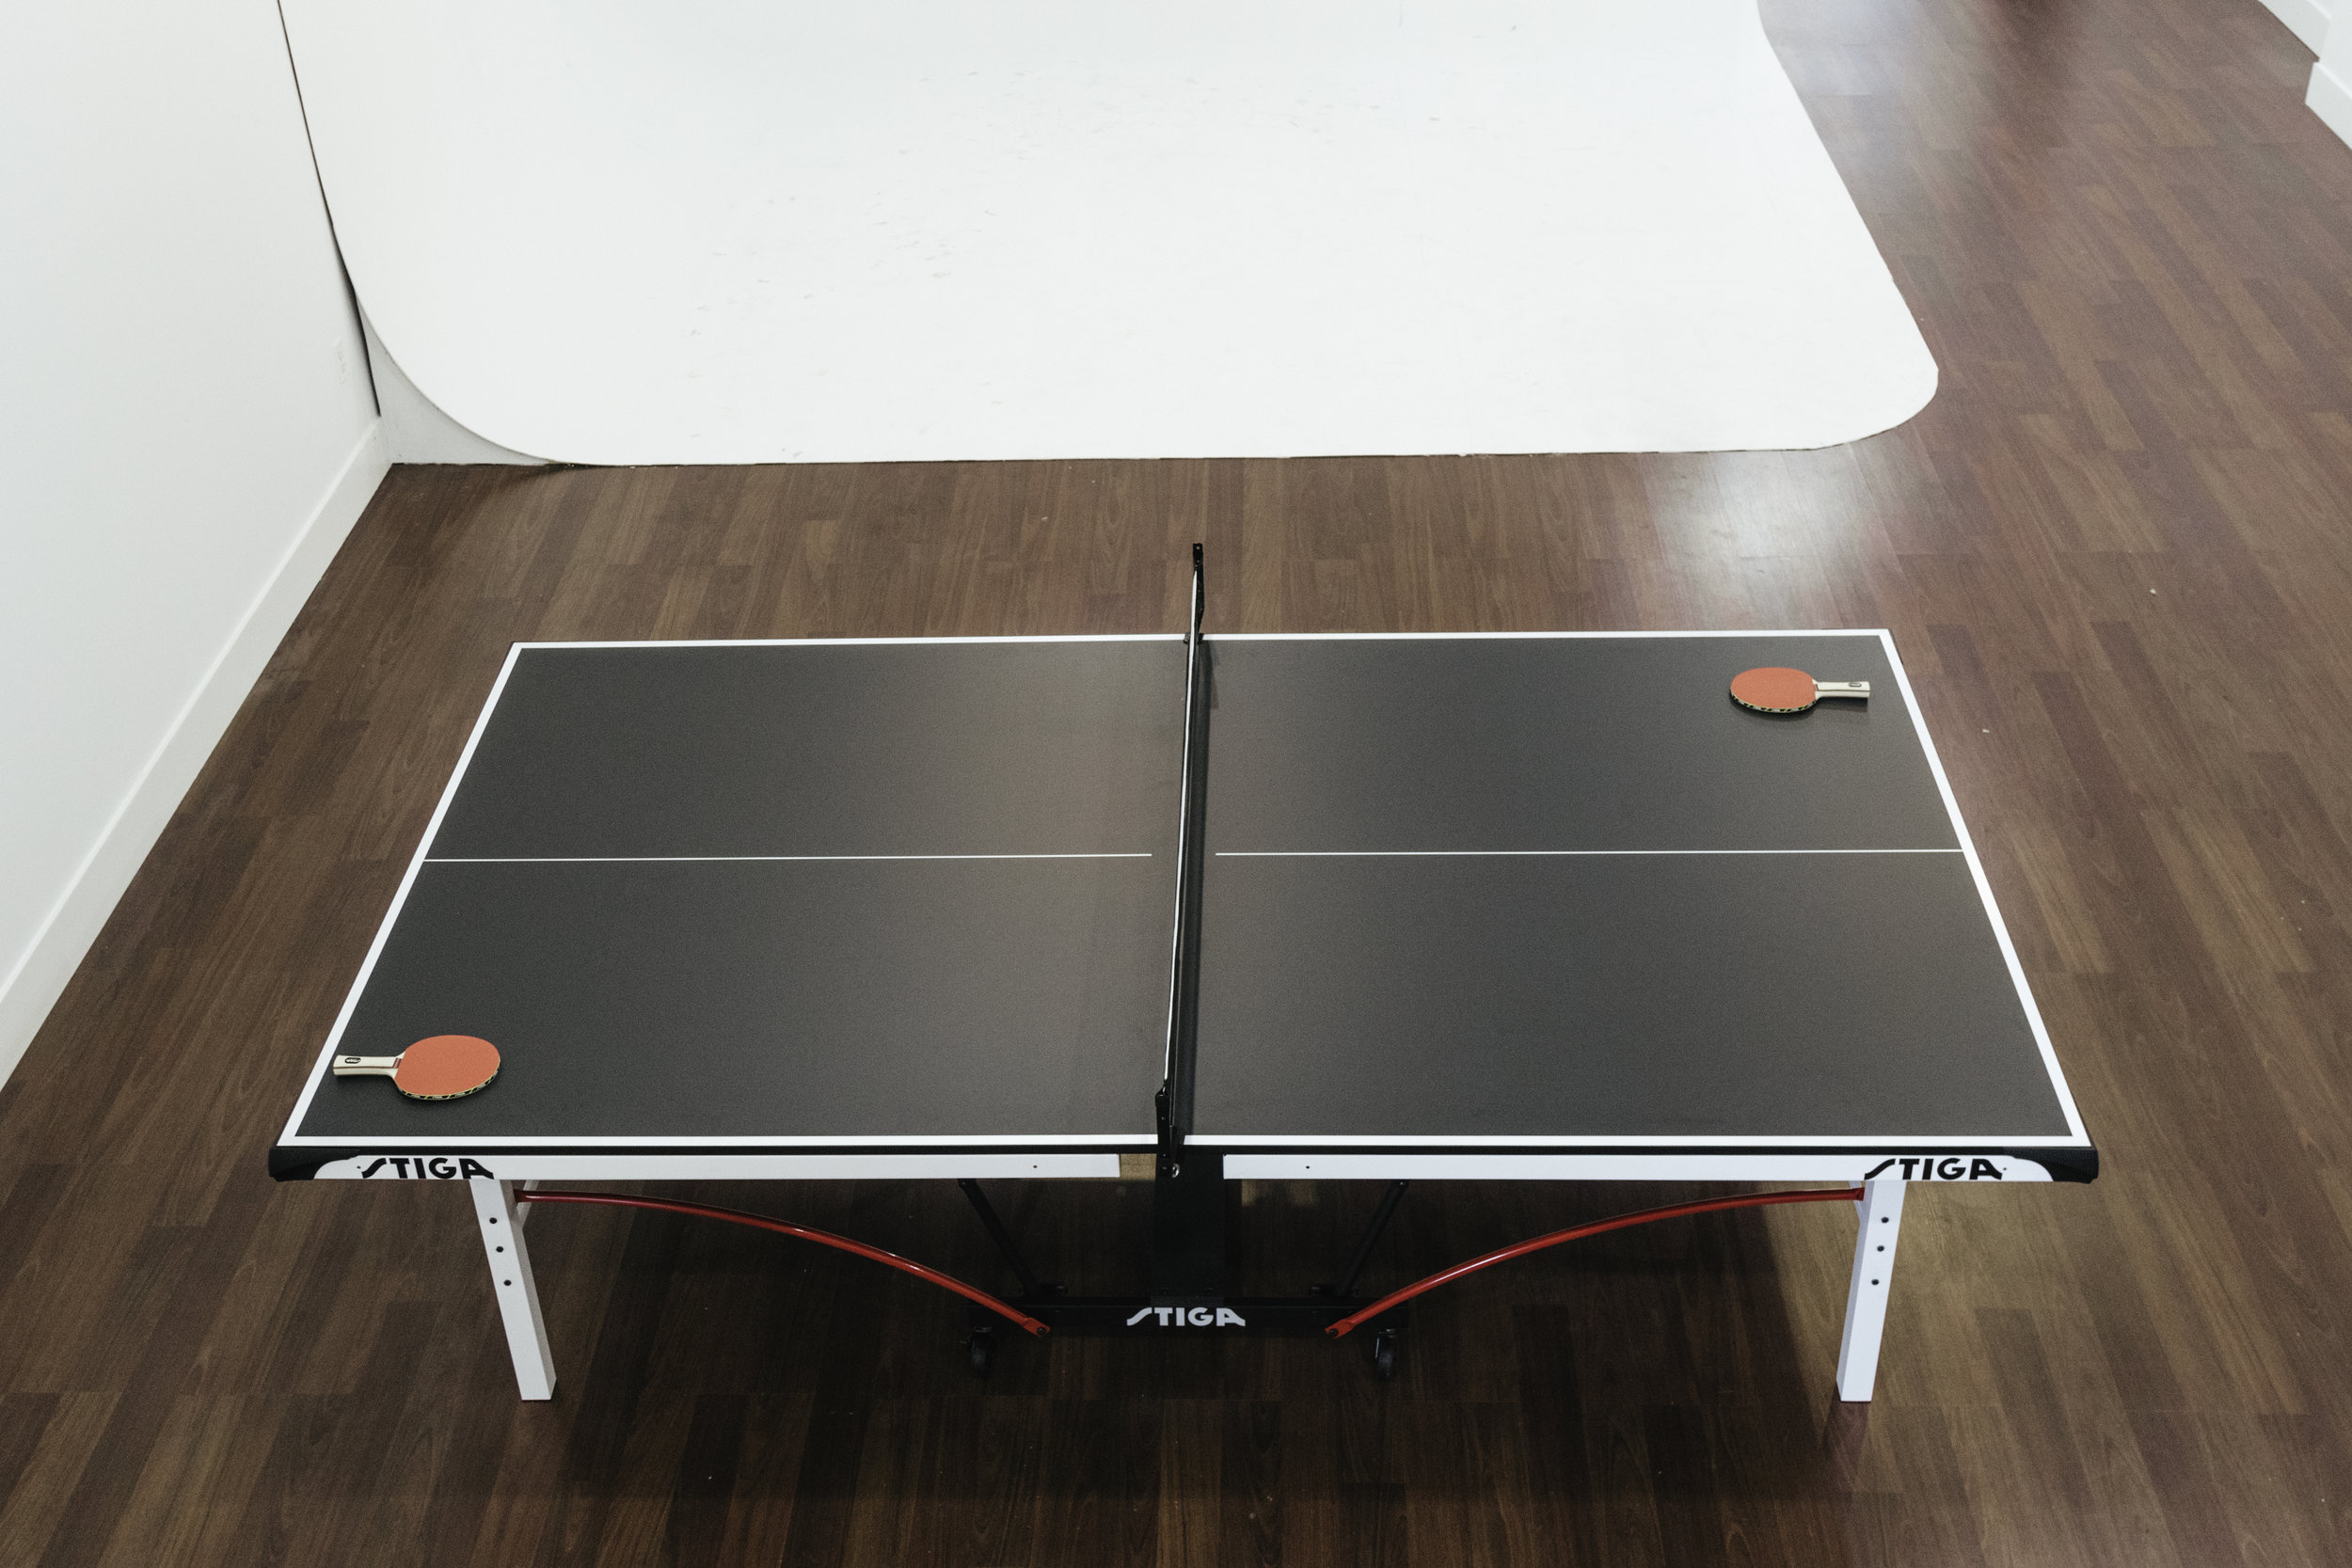 The Table - Wind down with a friendly game of ping pong.